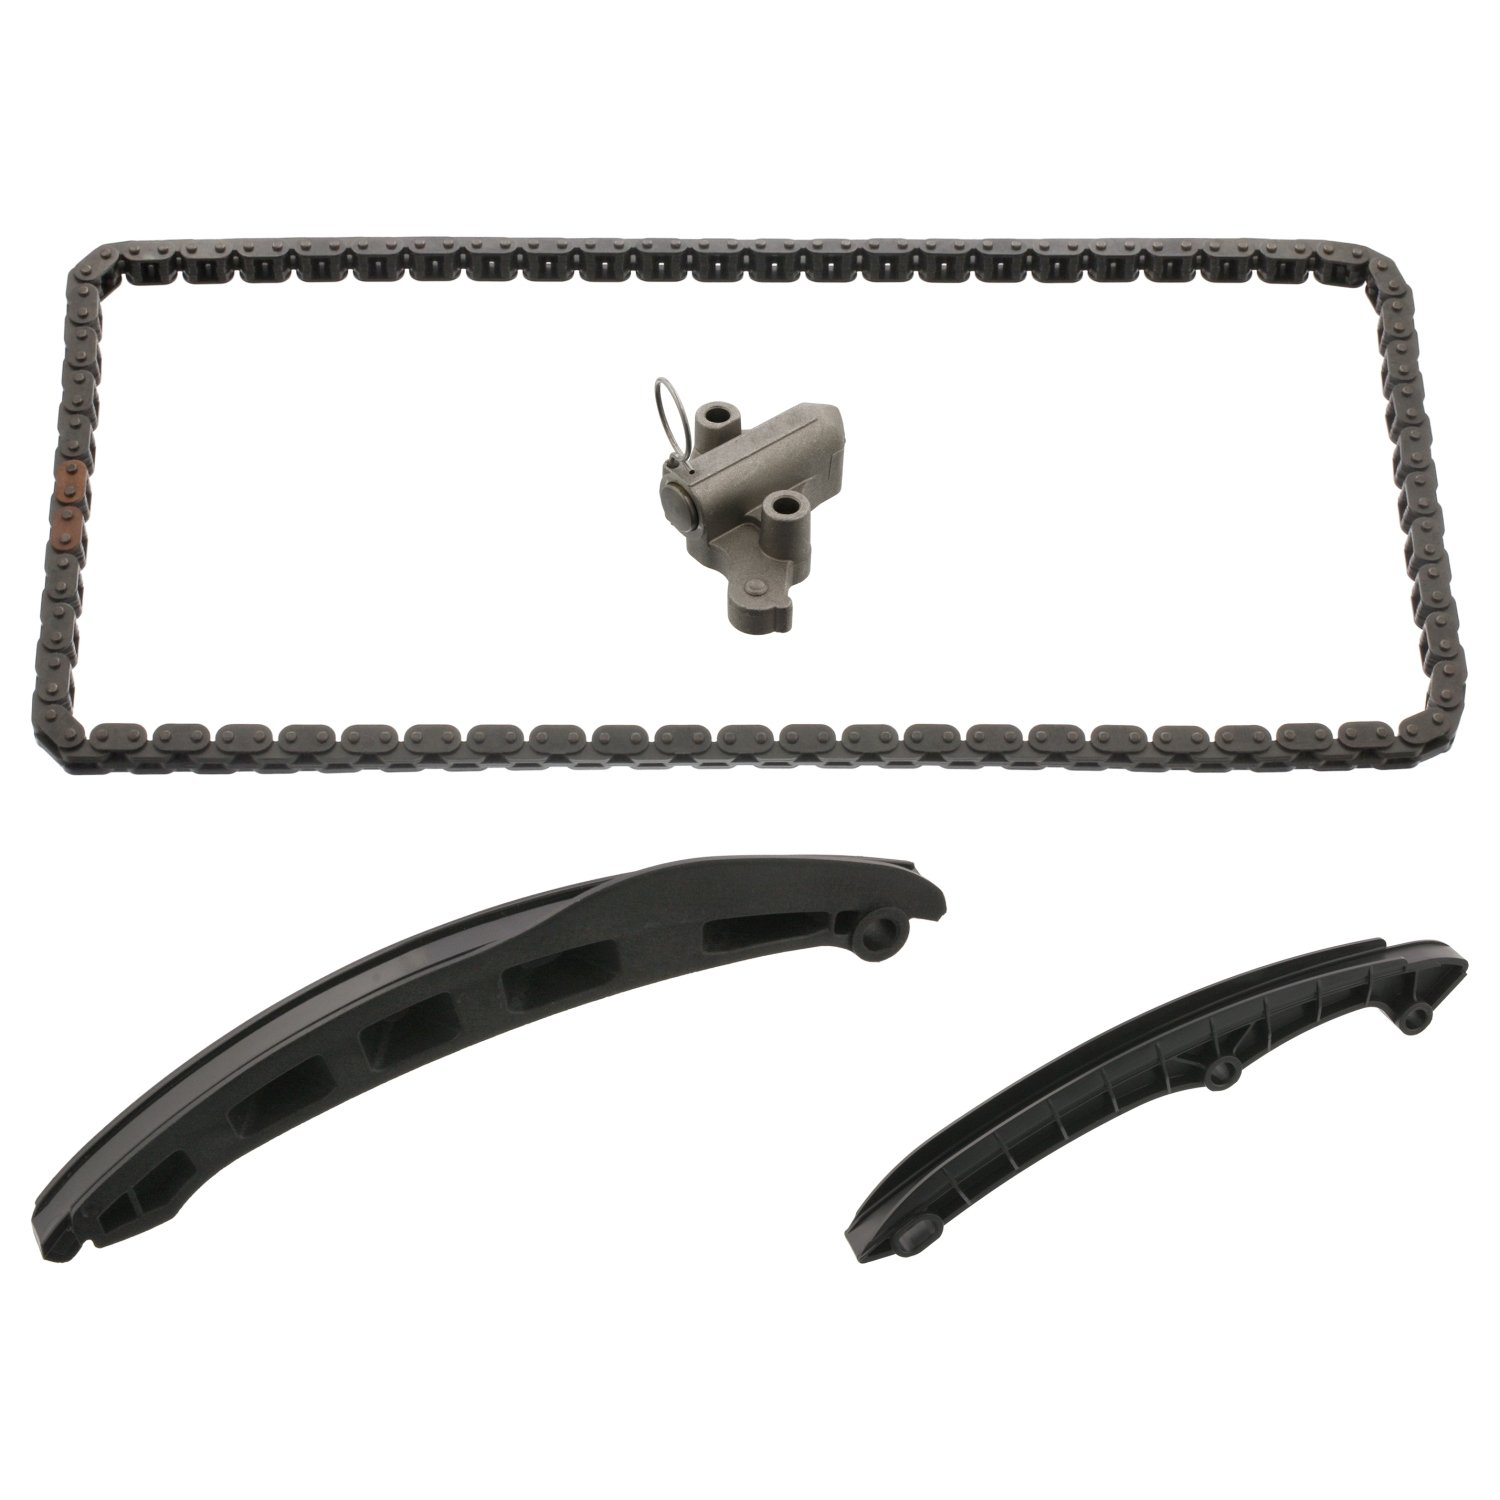 febi bilstein 40672 Timing Chain Kit for camshaft pack of one with sliding rails and chain tensioner